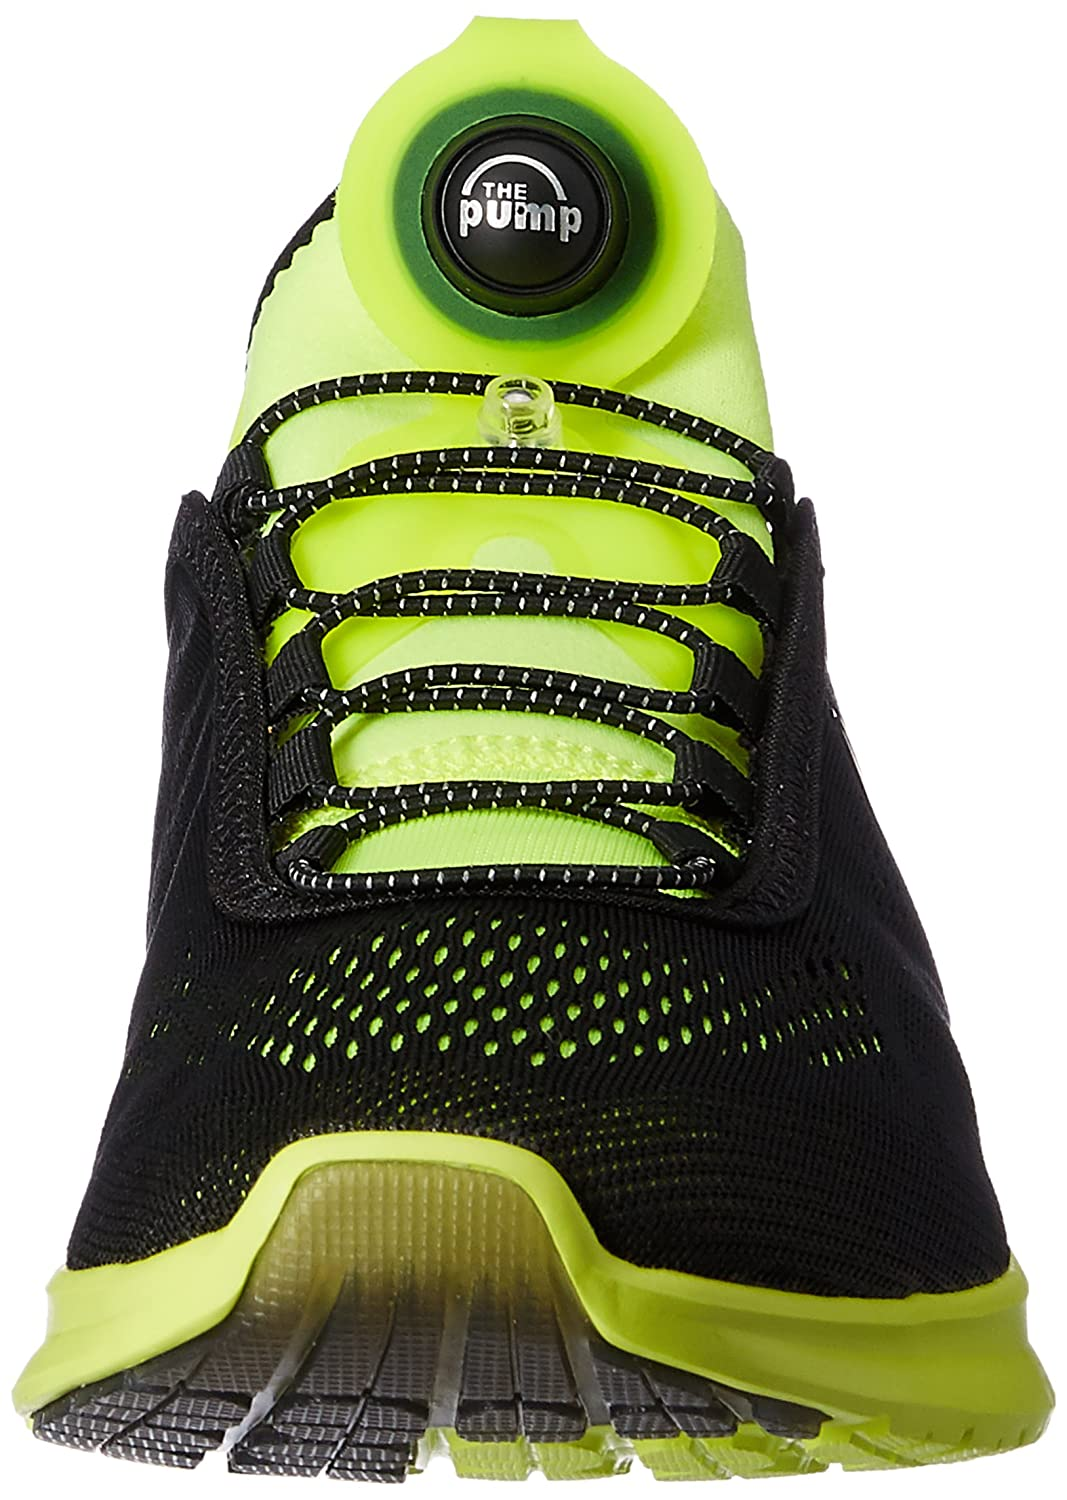 Reebok Men s Pump Plus Tech Running Shoes  Buy Online at Low Prices in  India - Amazon.in f53749a630